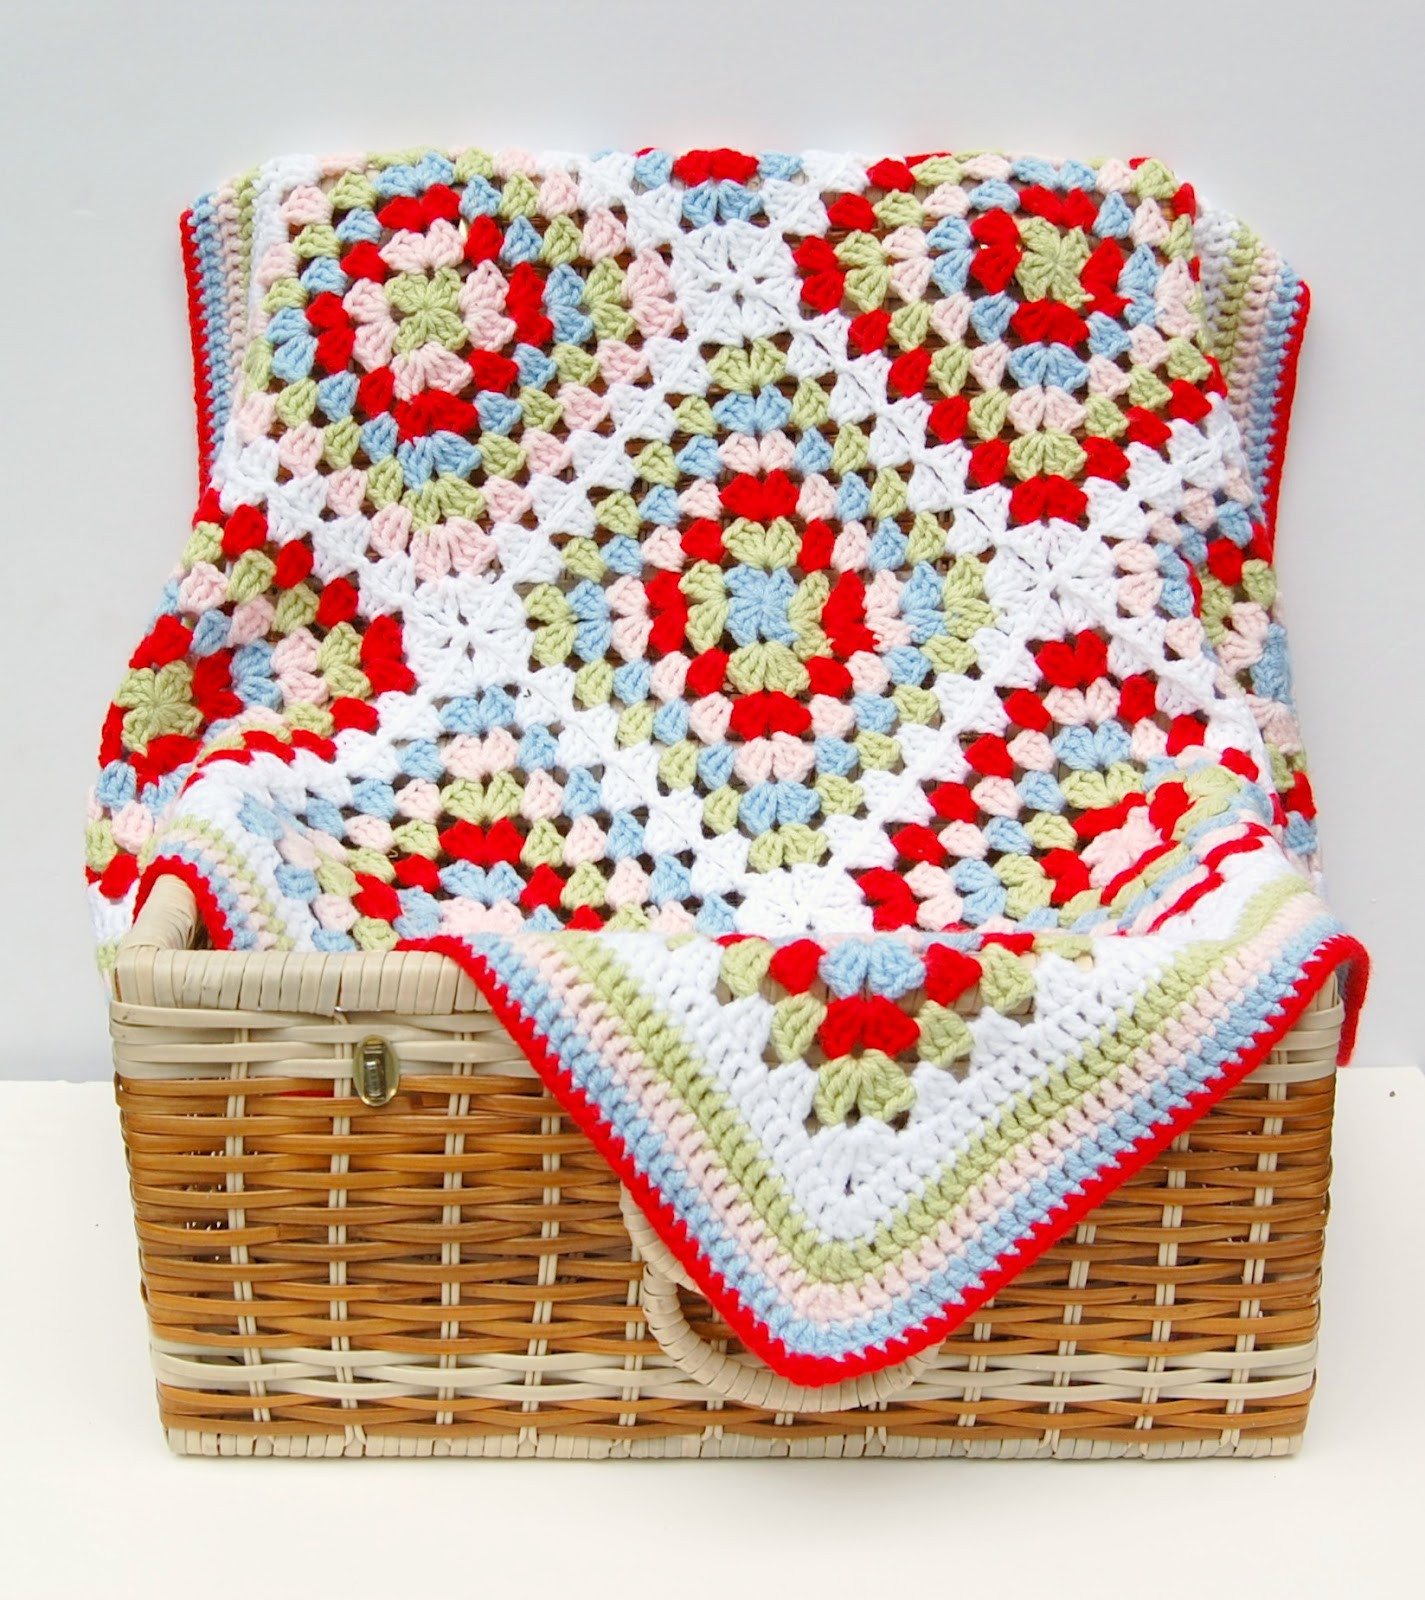 Crochet Granny Square Baby Blanket Inspirational Hopscotch Lane Matching Crochet Blanket and Owl Pillow Of Incredible 47 Pics Crochet Granny Square Baby Blanket